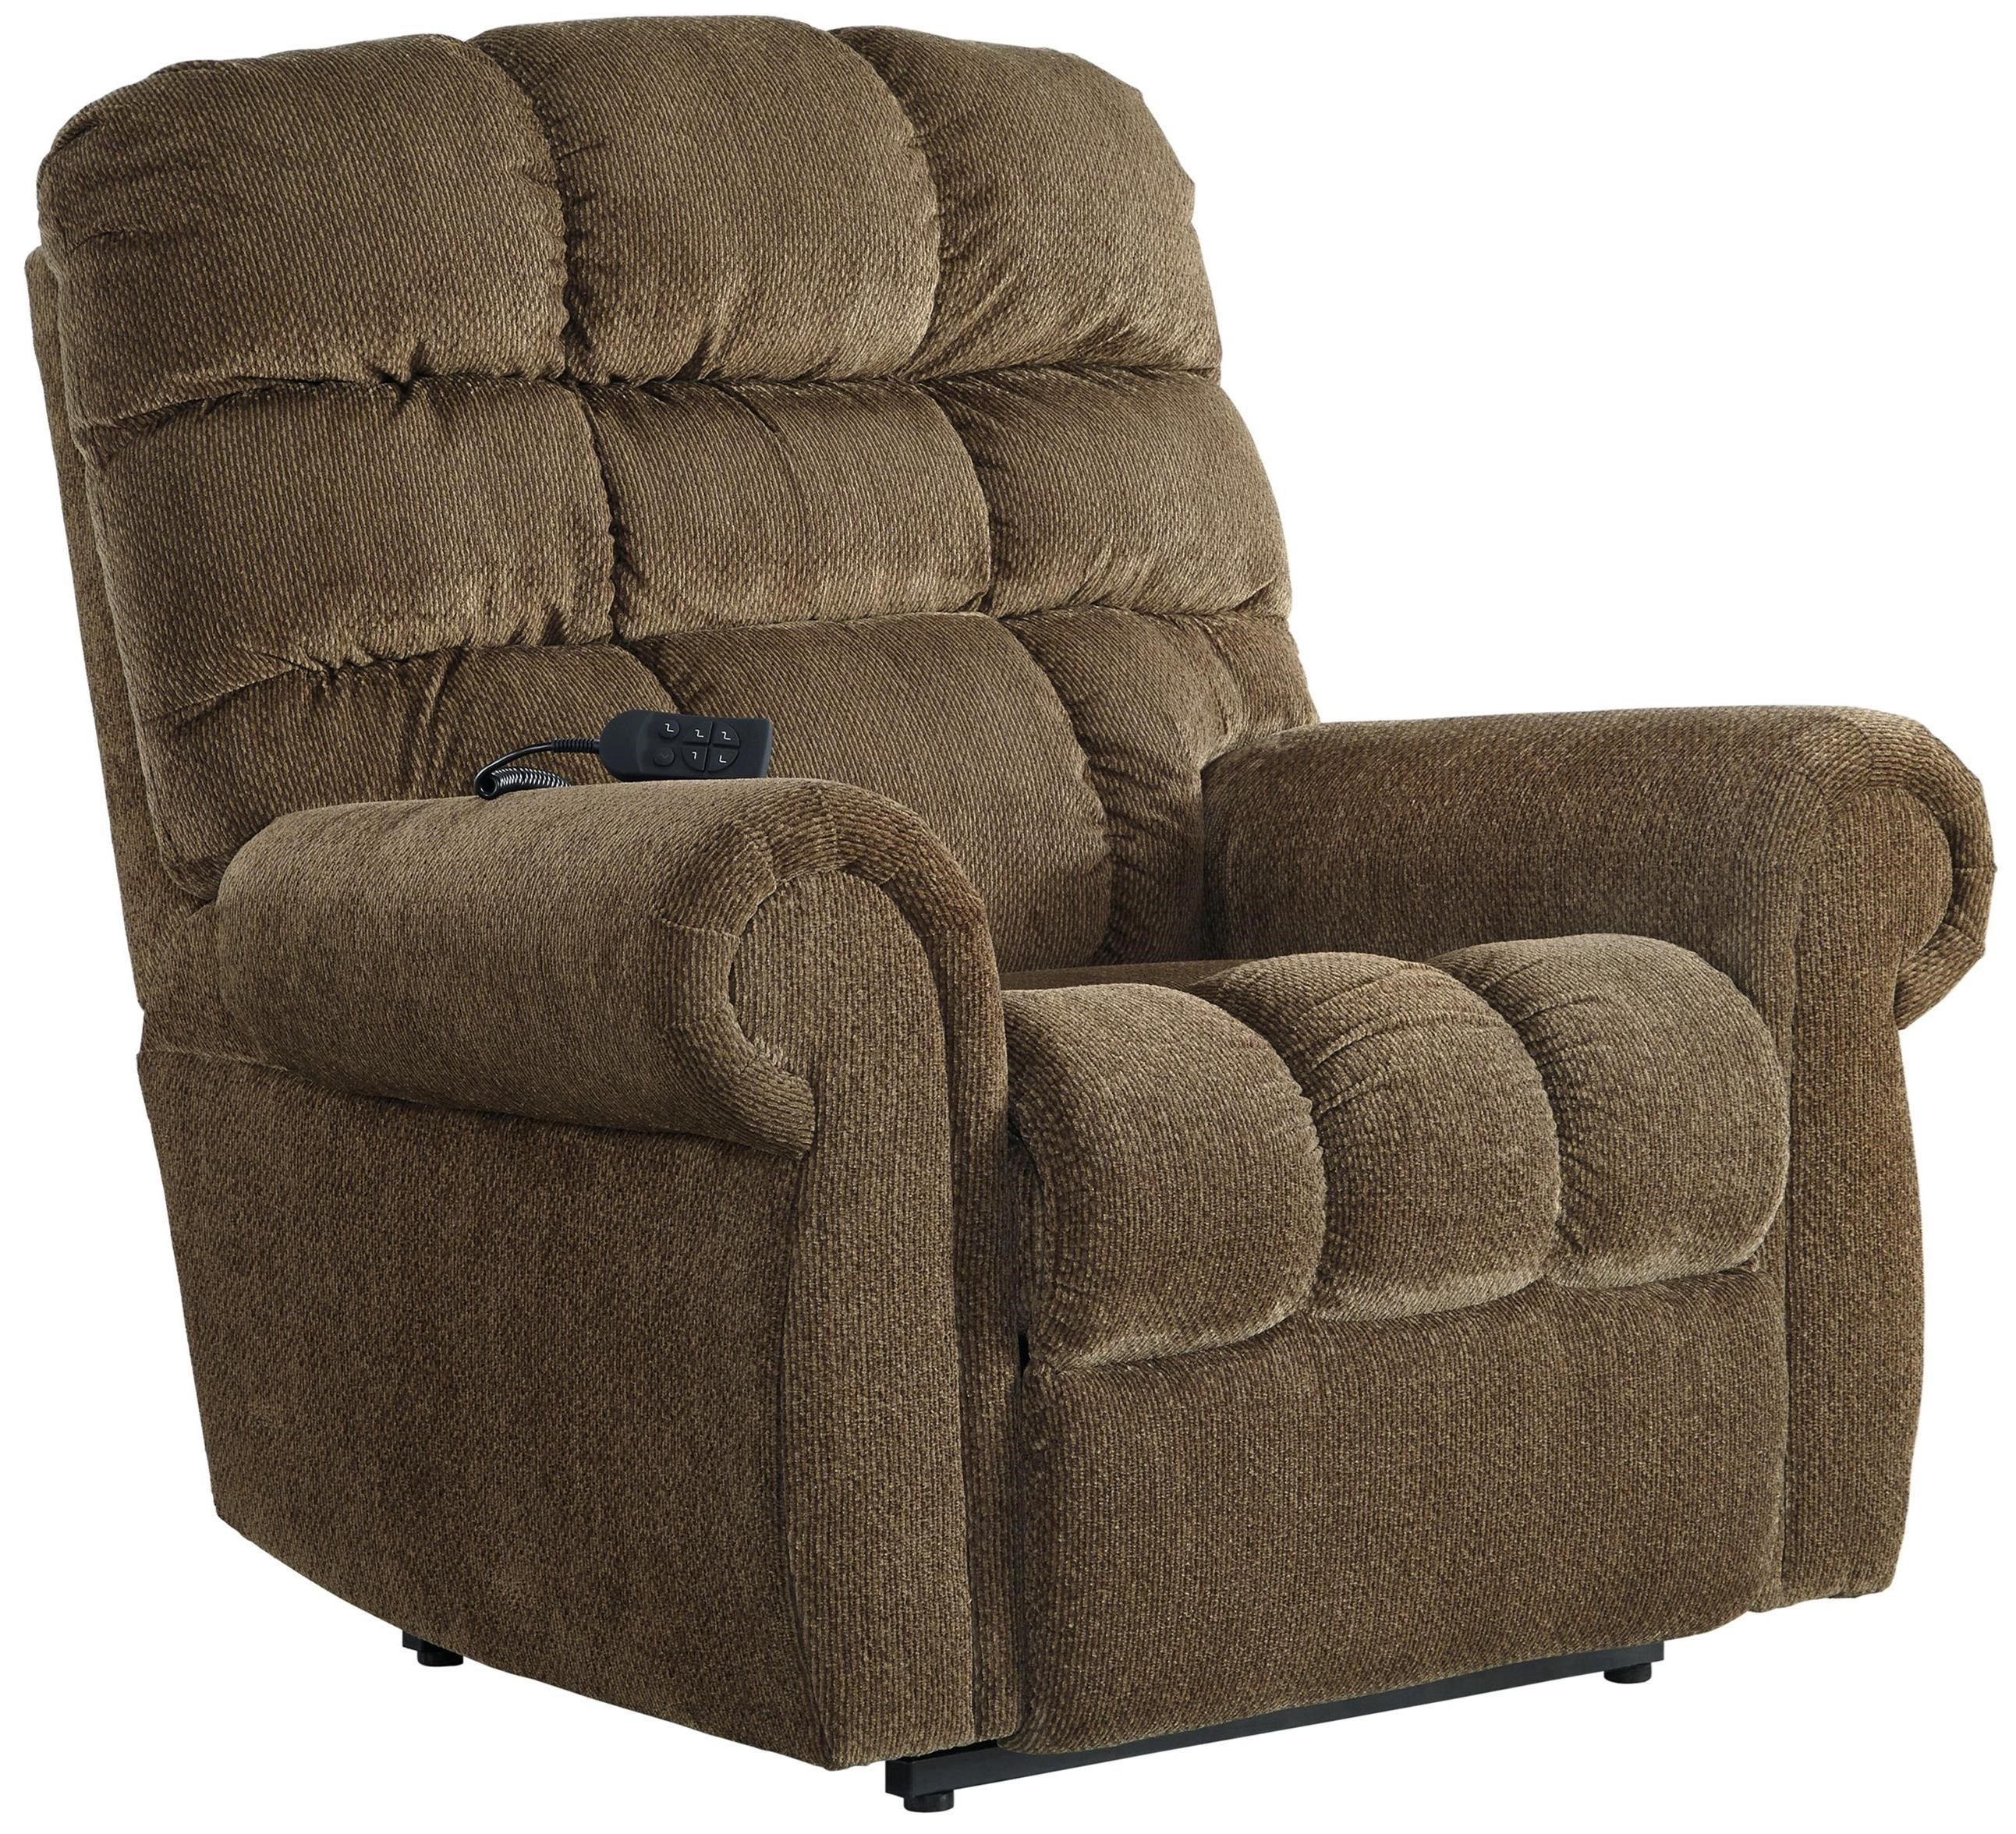 Signature Design by Ashley Ernestine Power Lift Recliner with Rolled Arms  sc 1 st  Wayside Furniture & Signature Design by Ashley Ernestine Power Lift Recliner with ... islam-shia.org